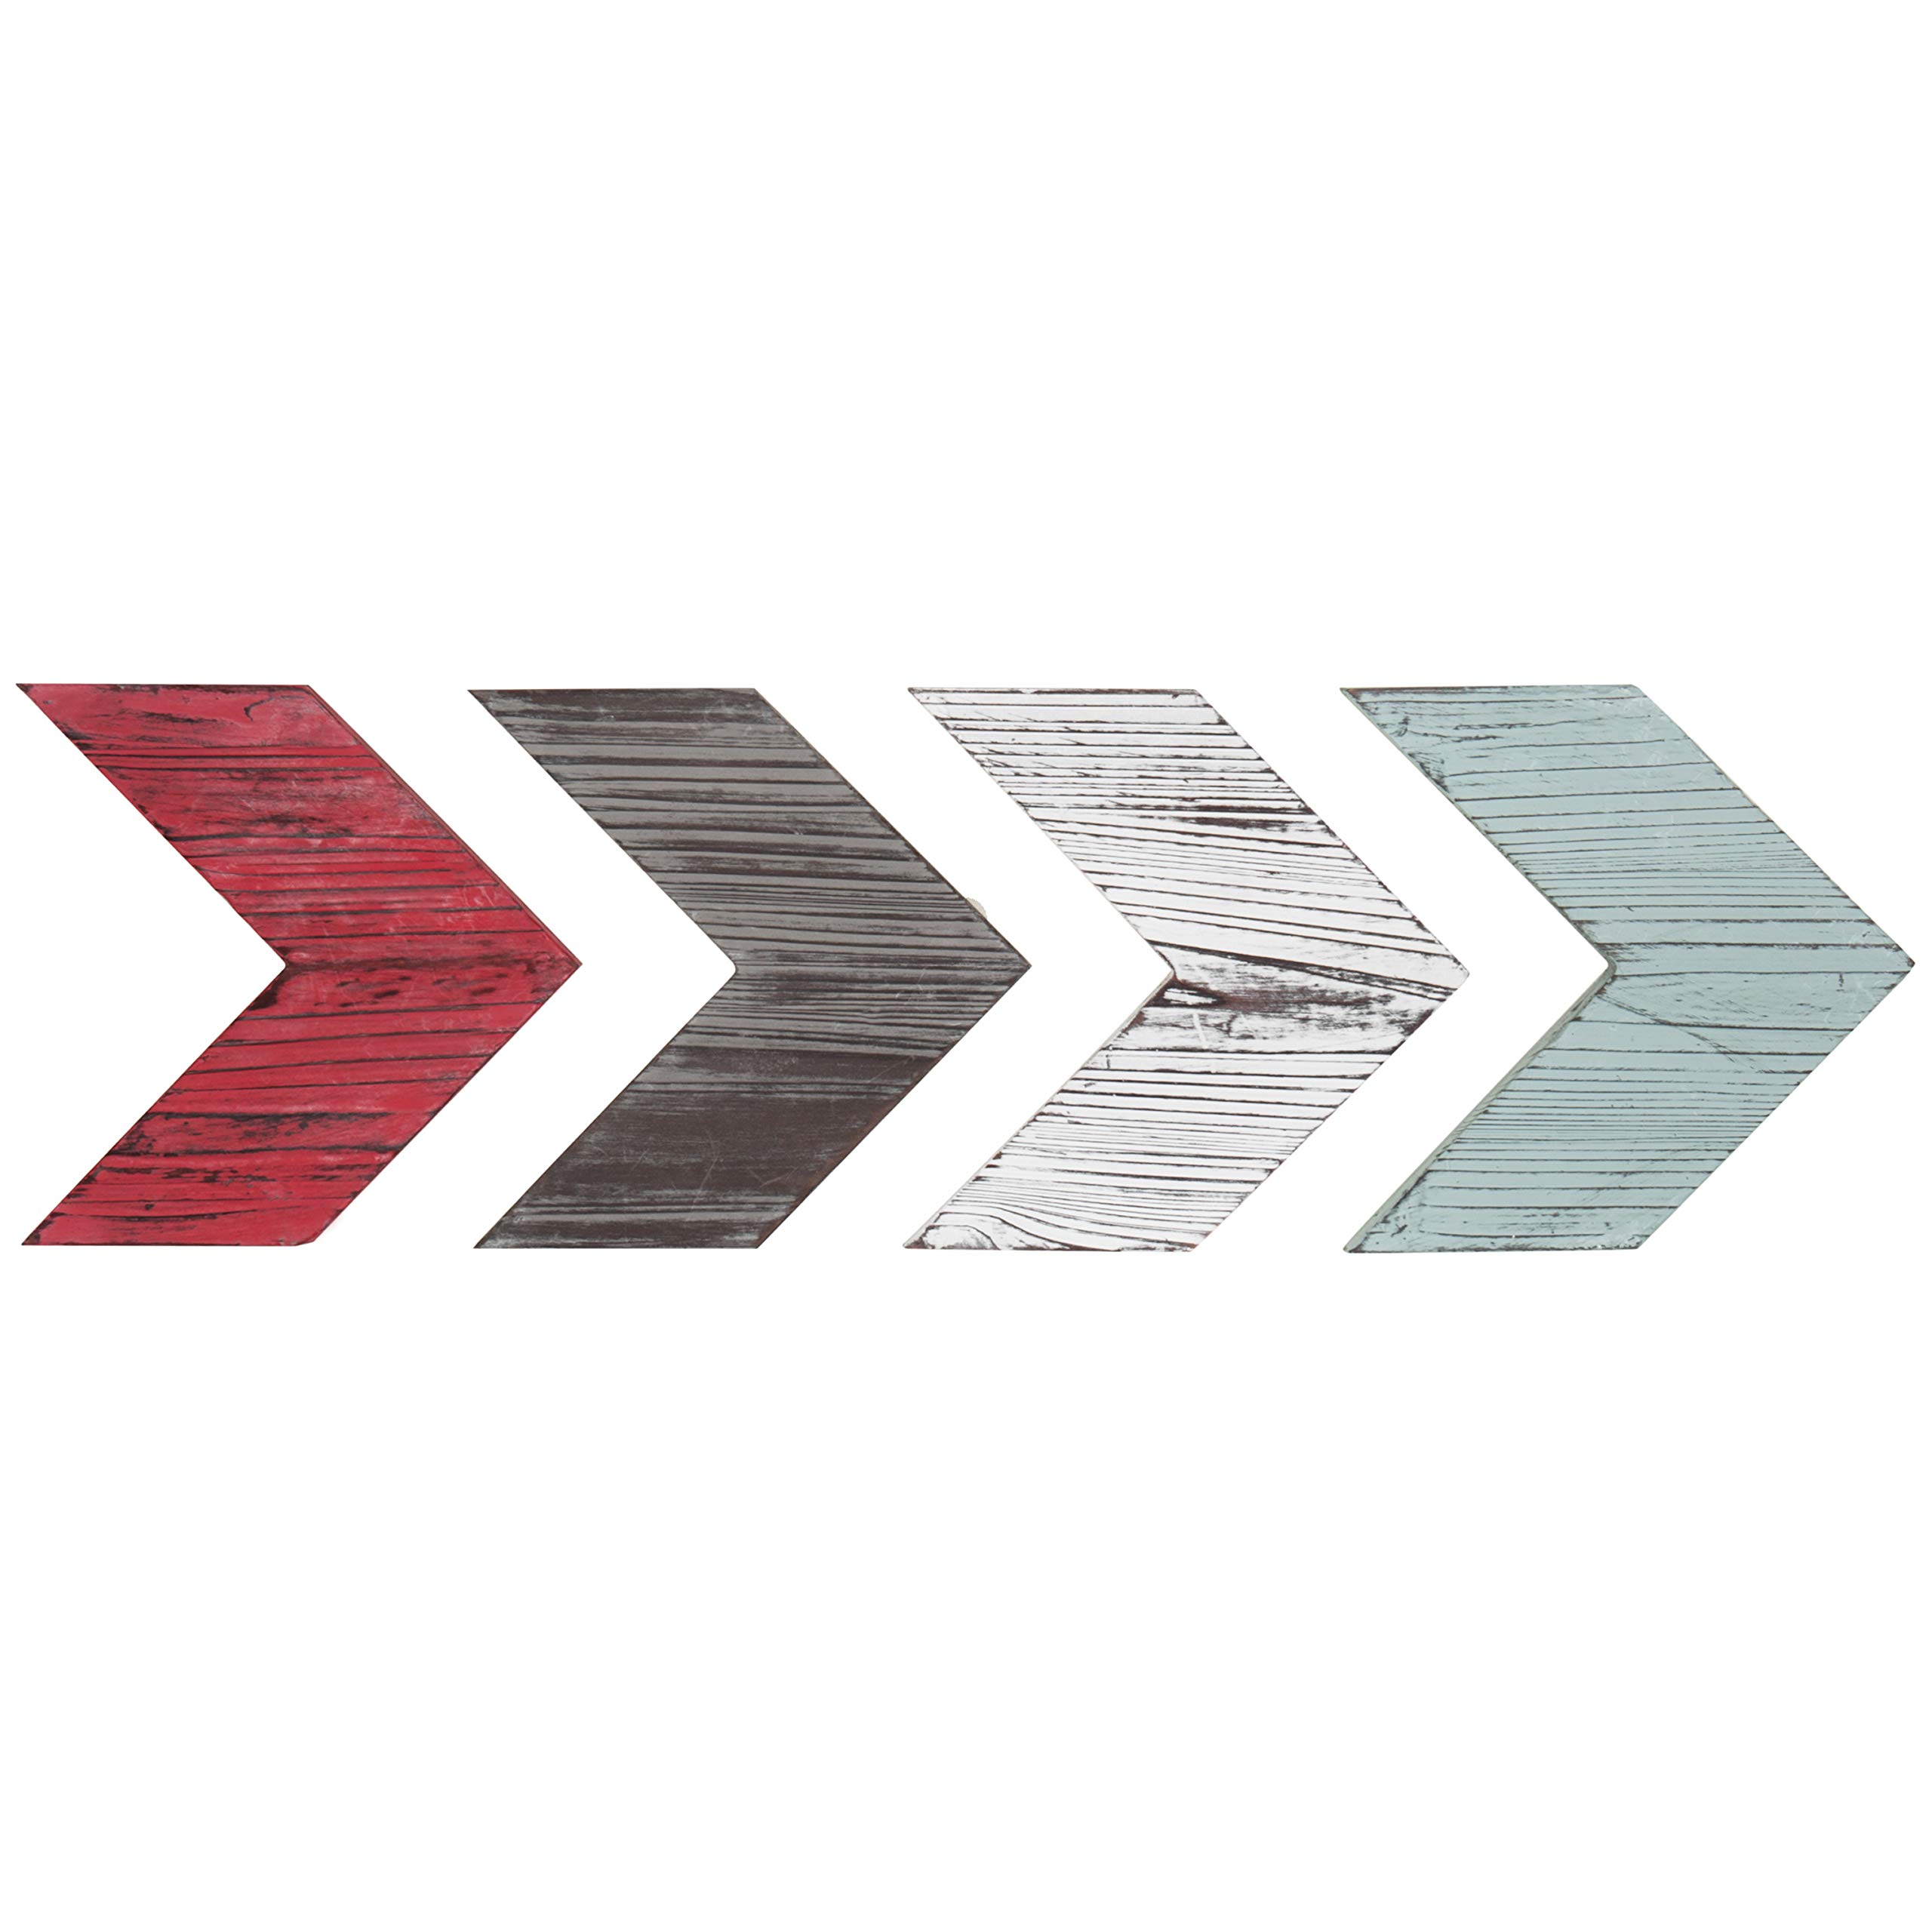 MyGift Decorative Rustic Wood Wall-Mounted Chevron Arrows, Set of 4